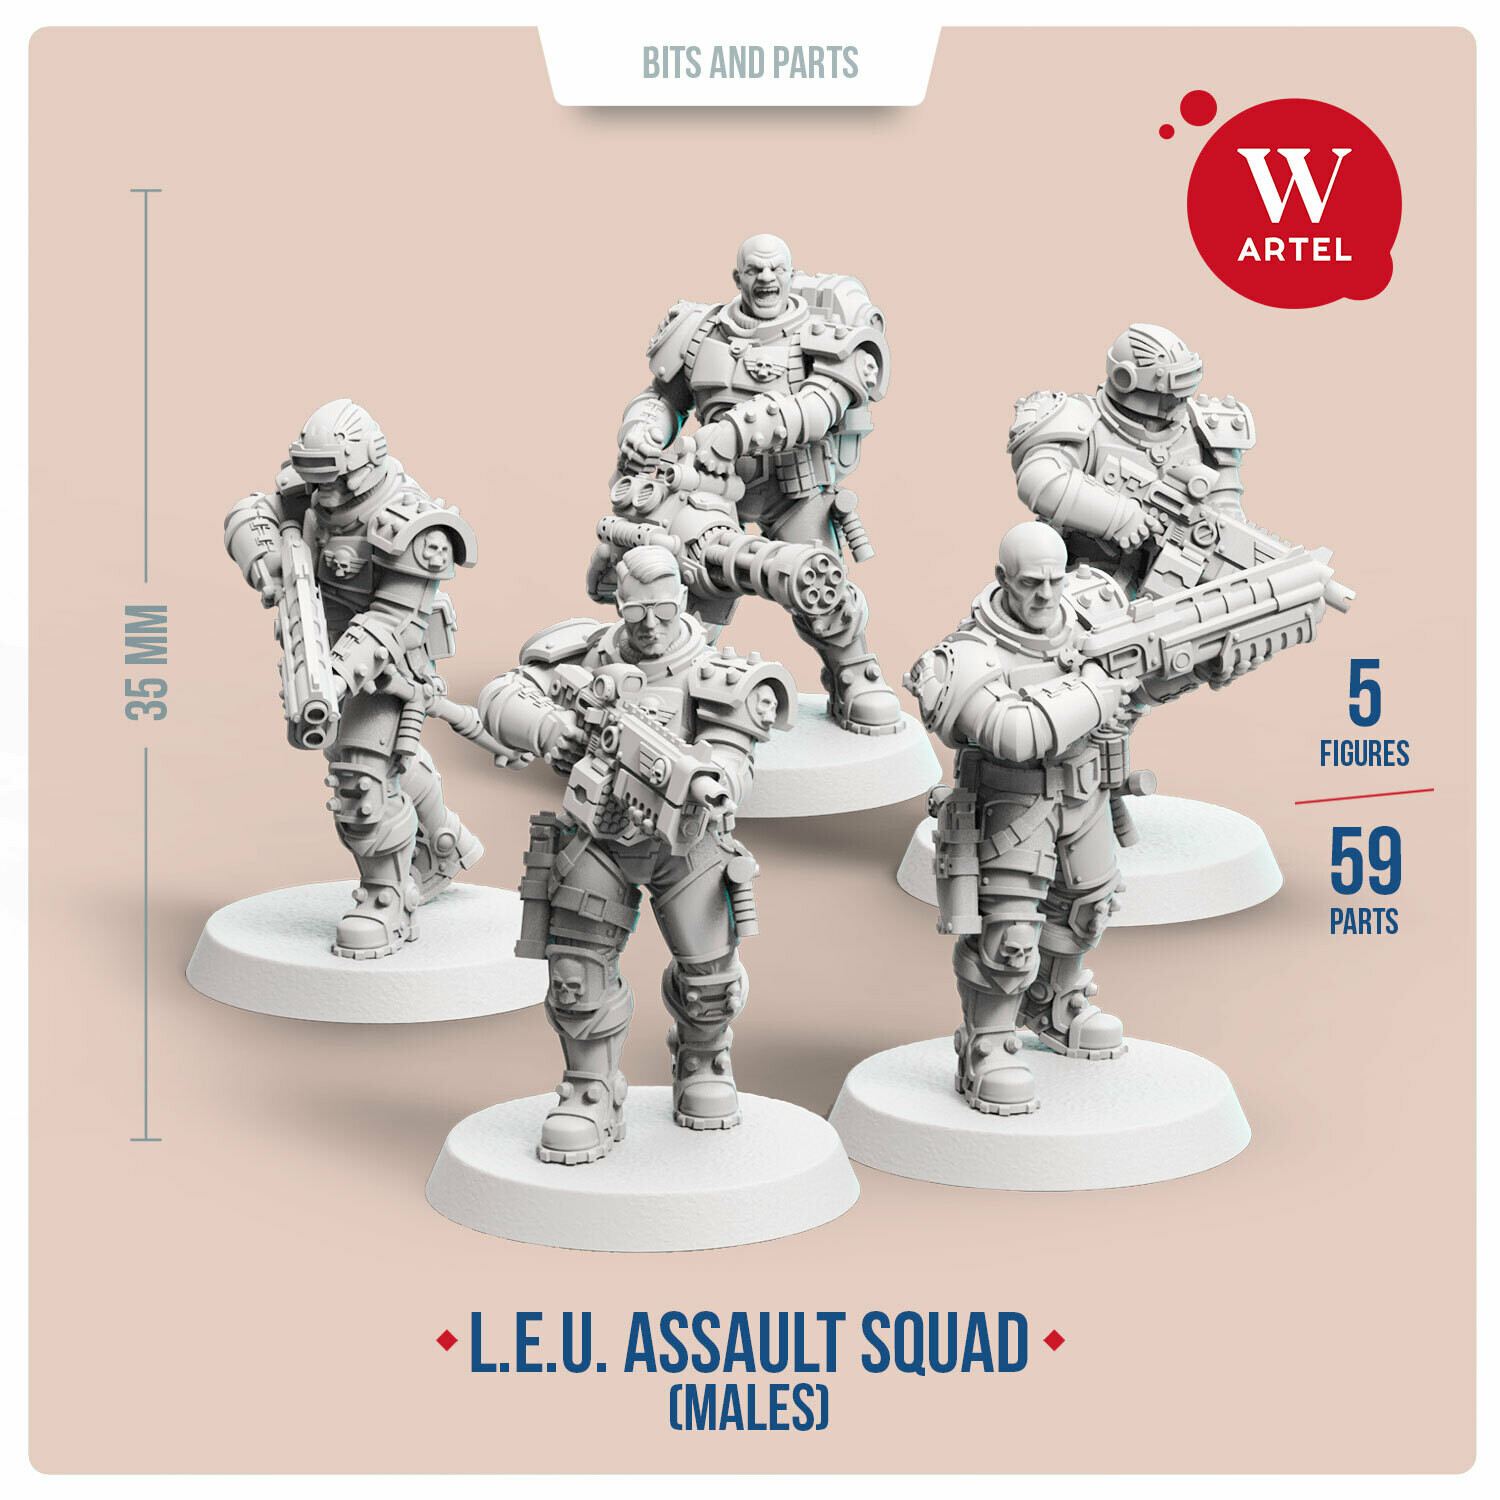 L.E.U. - Assault Squad (Male enforcers)